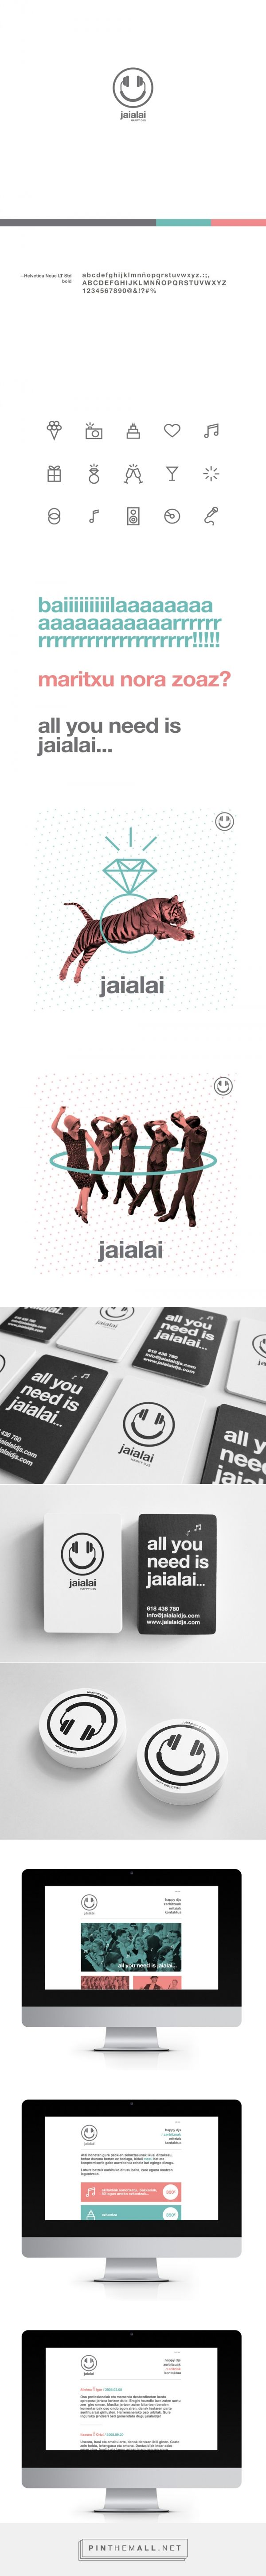 Jaialai on Behance... - a grouped images picture - Pin Them All